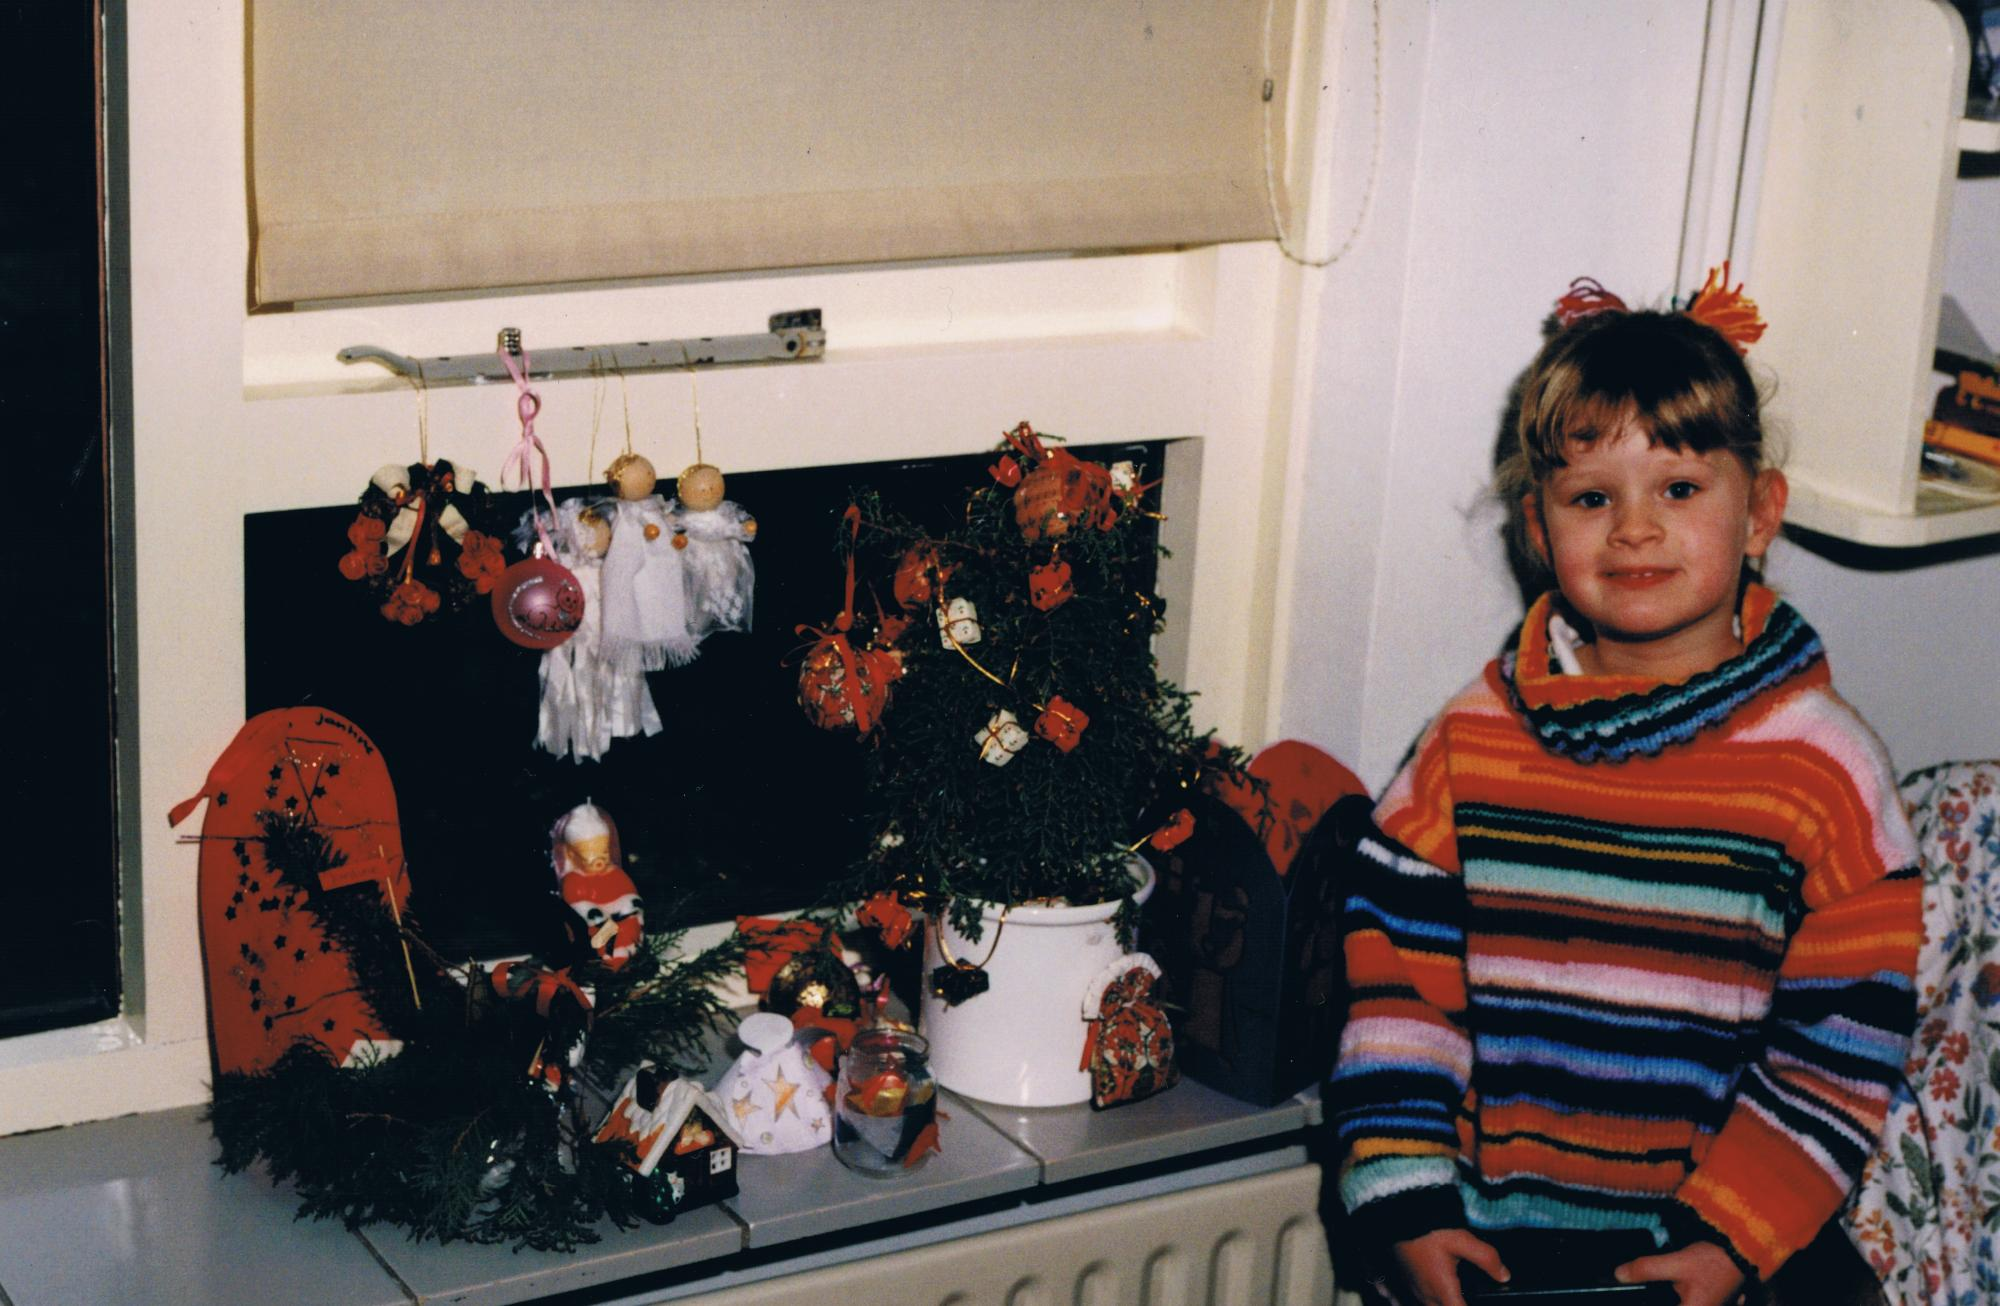 Jantine Huisman as a child with Christmas decorations. Photo courtesy of Jantine Husiman.